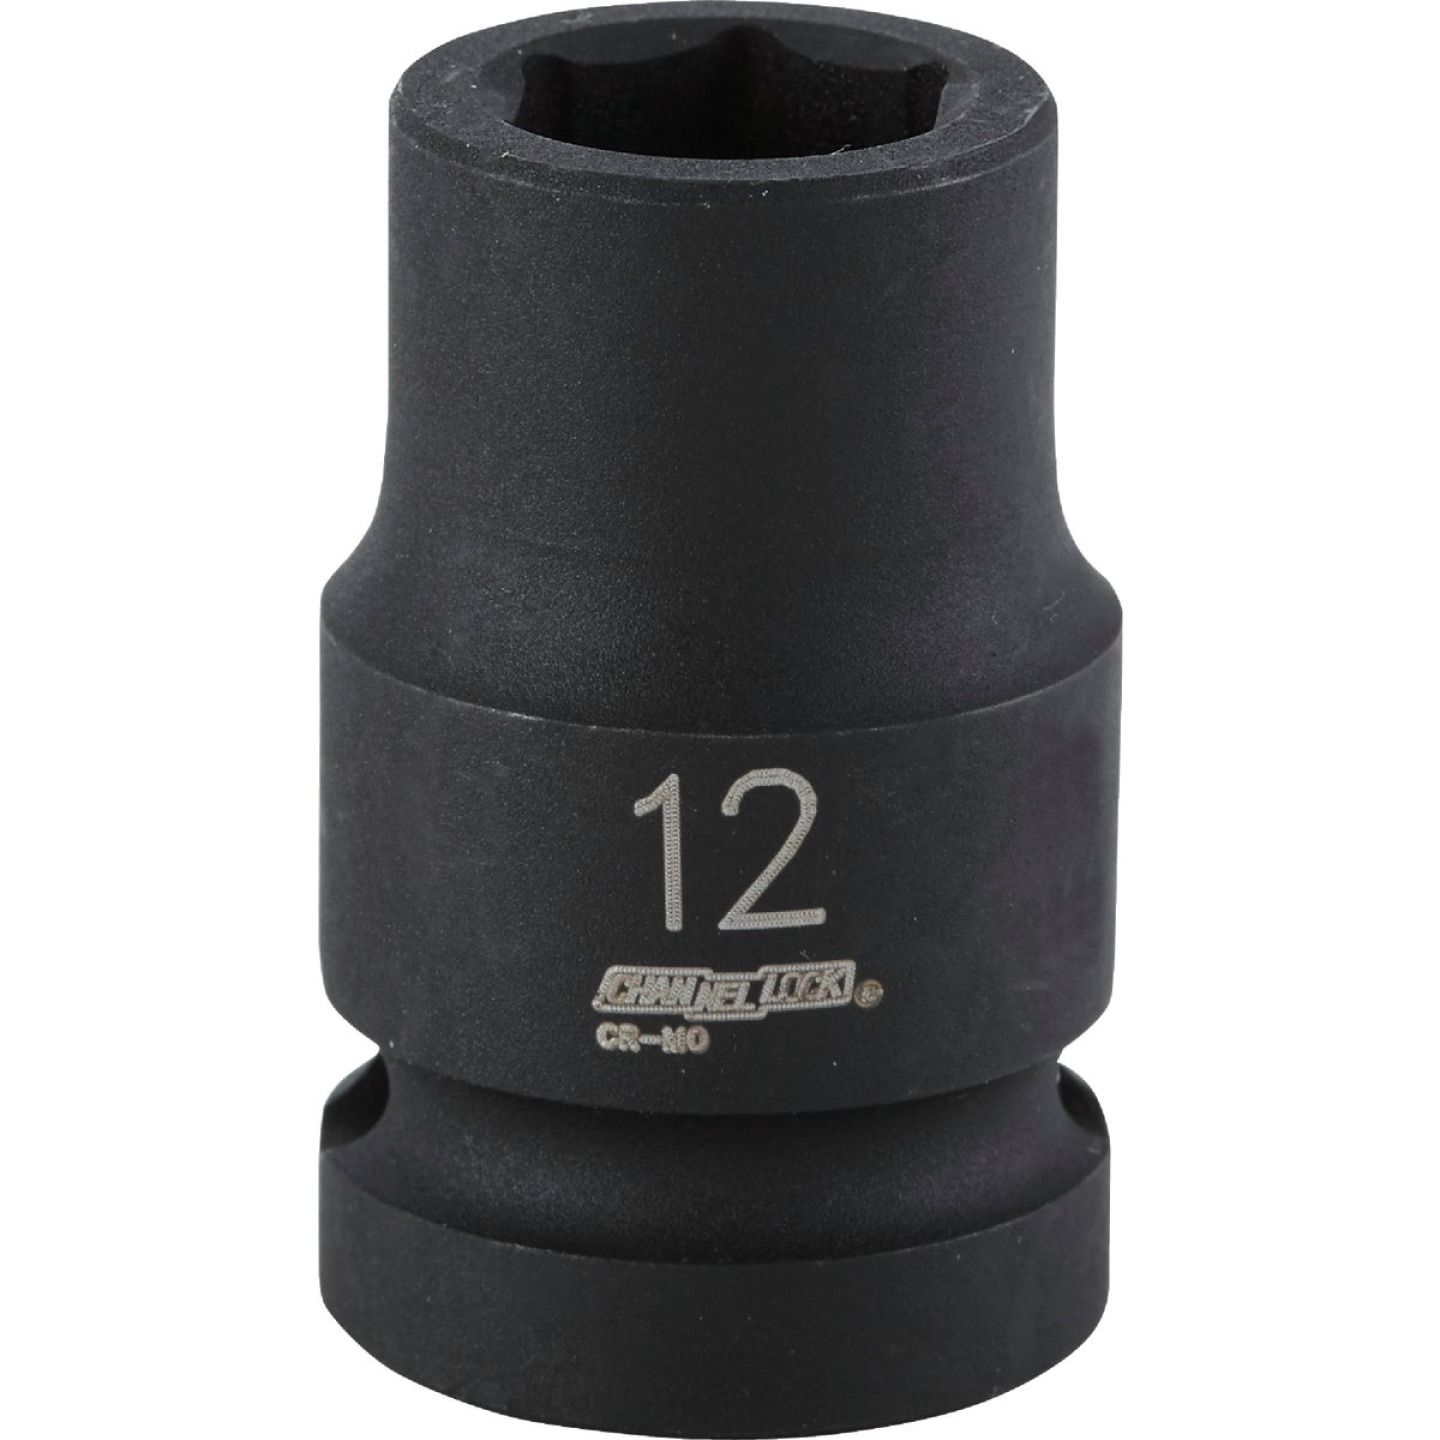 Channellock 1/2 In. Drive 12 mm 6-Point Shallow Metric Impact Socket Image 1